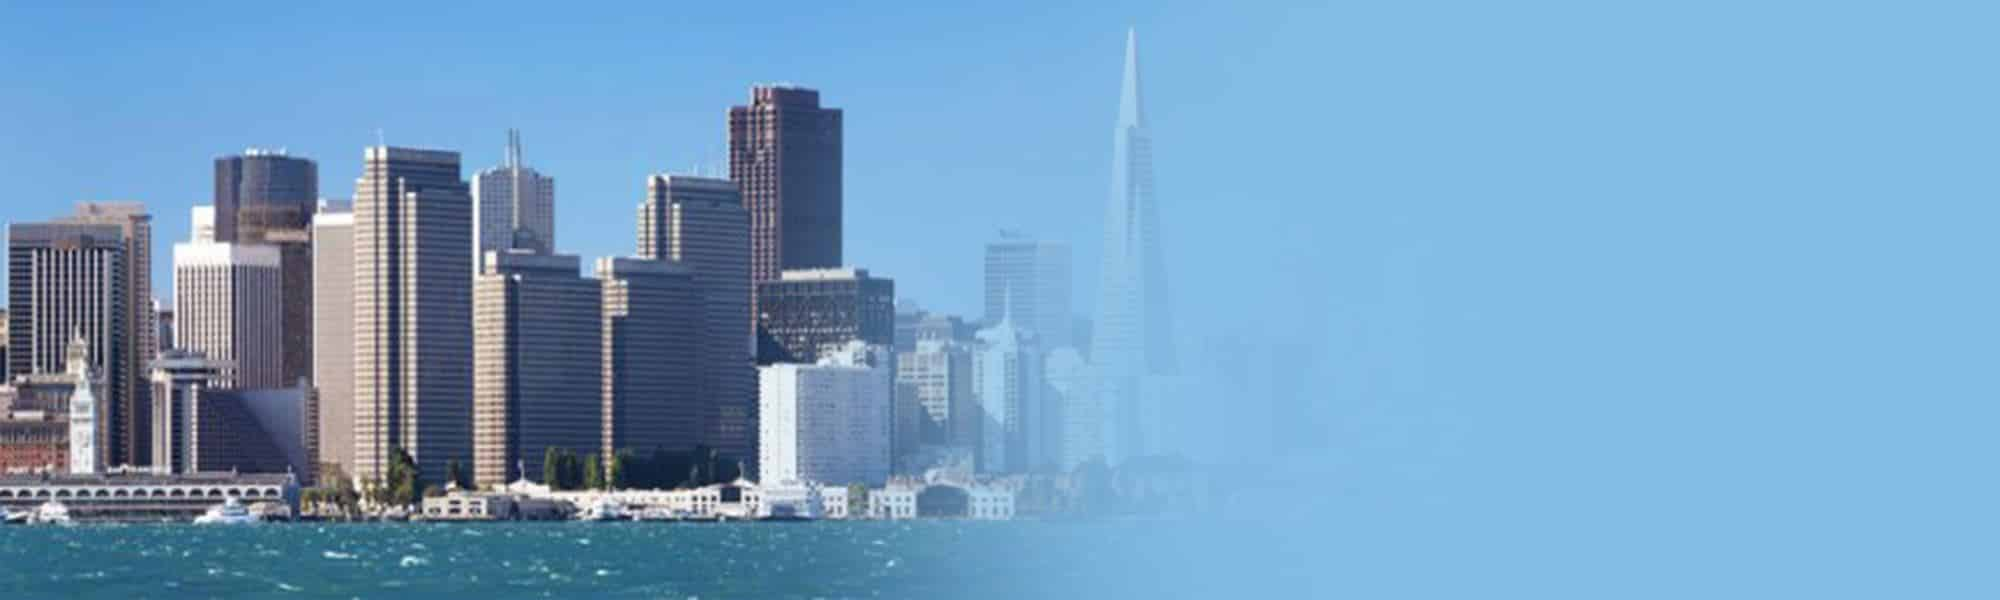 Image of San Francisco's skyline, representing international SEO